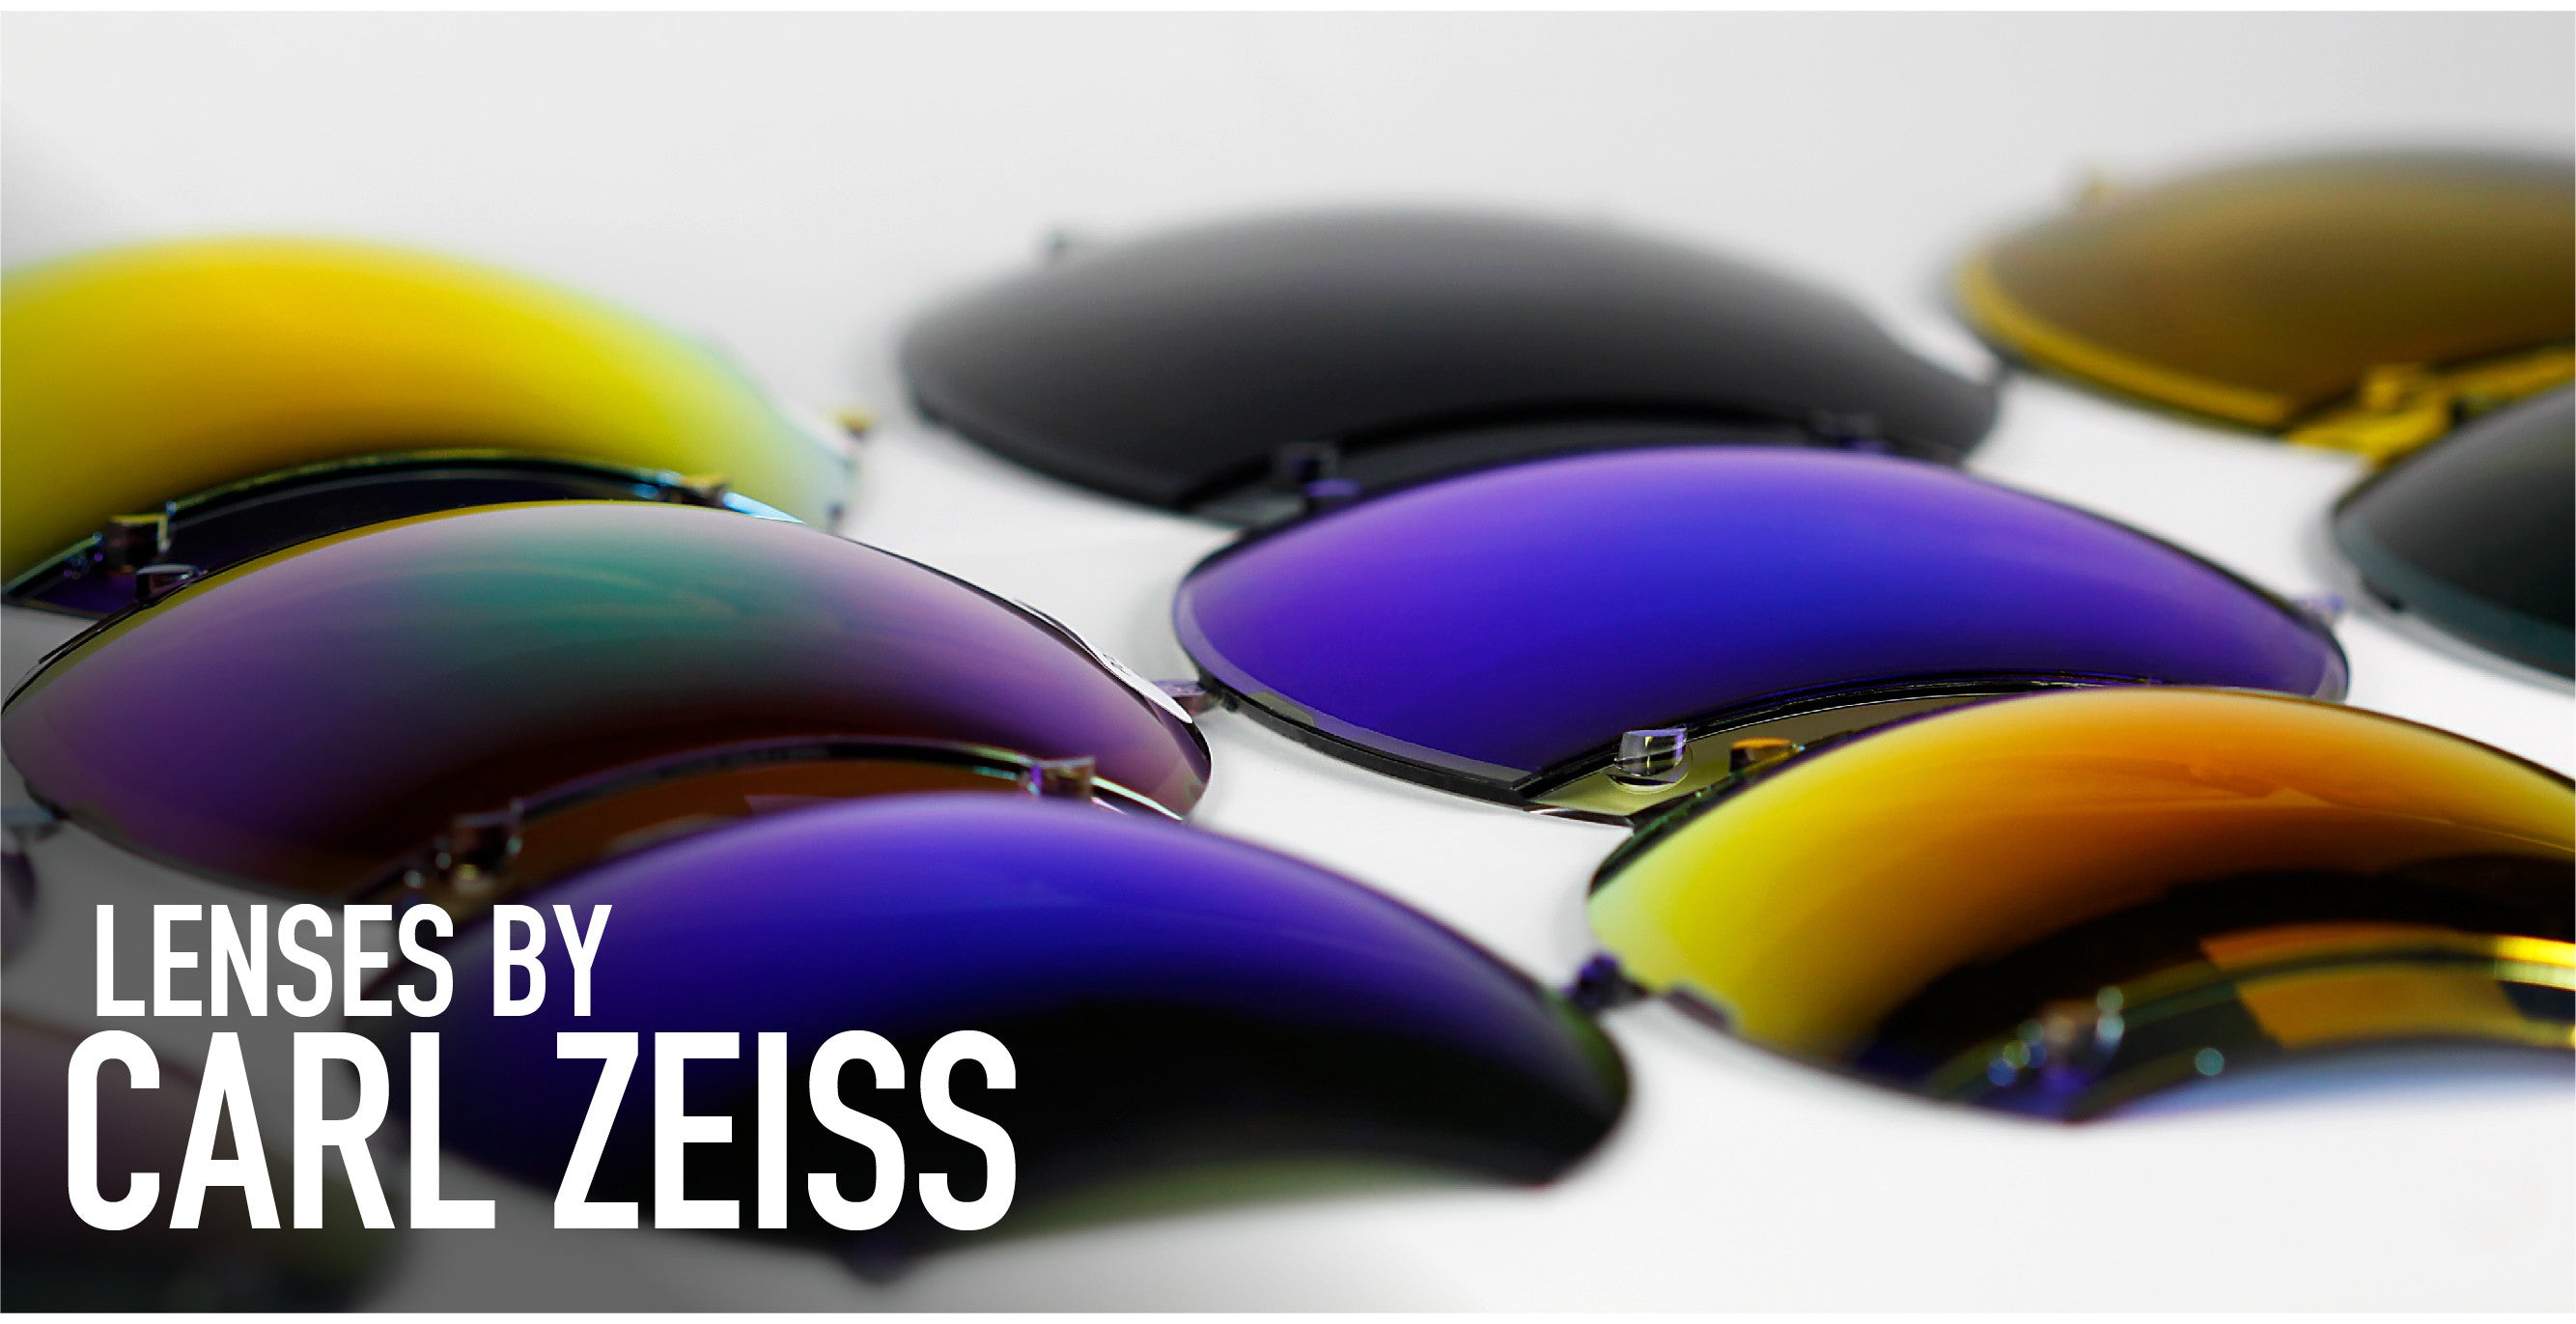 Carl Zeiss lenses